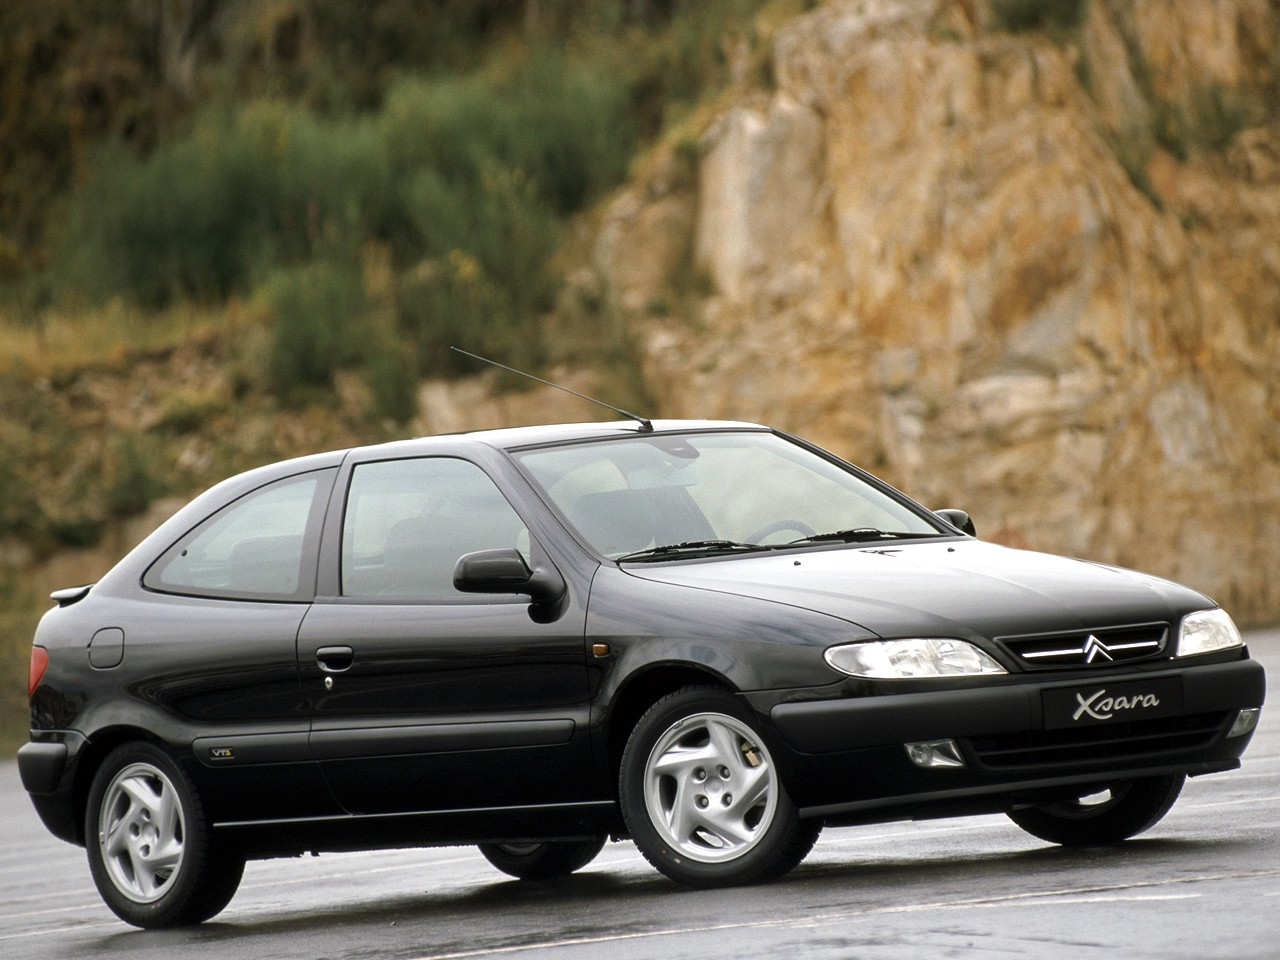 citroen xsara coupe vts specs photos 1998 1999 2000 autoevolution. Black Bedroom Furniture Sets. Home Design Ideas